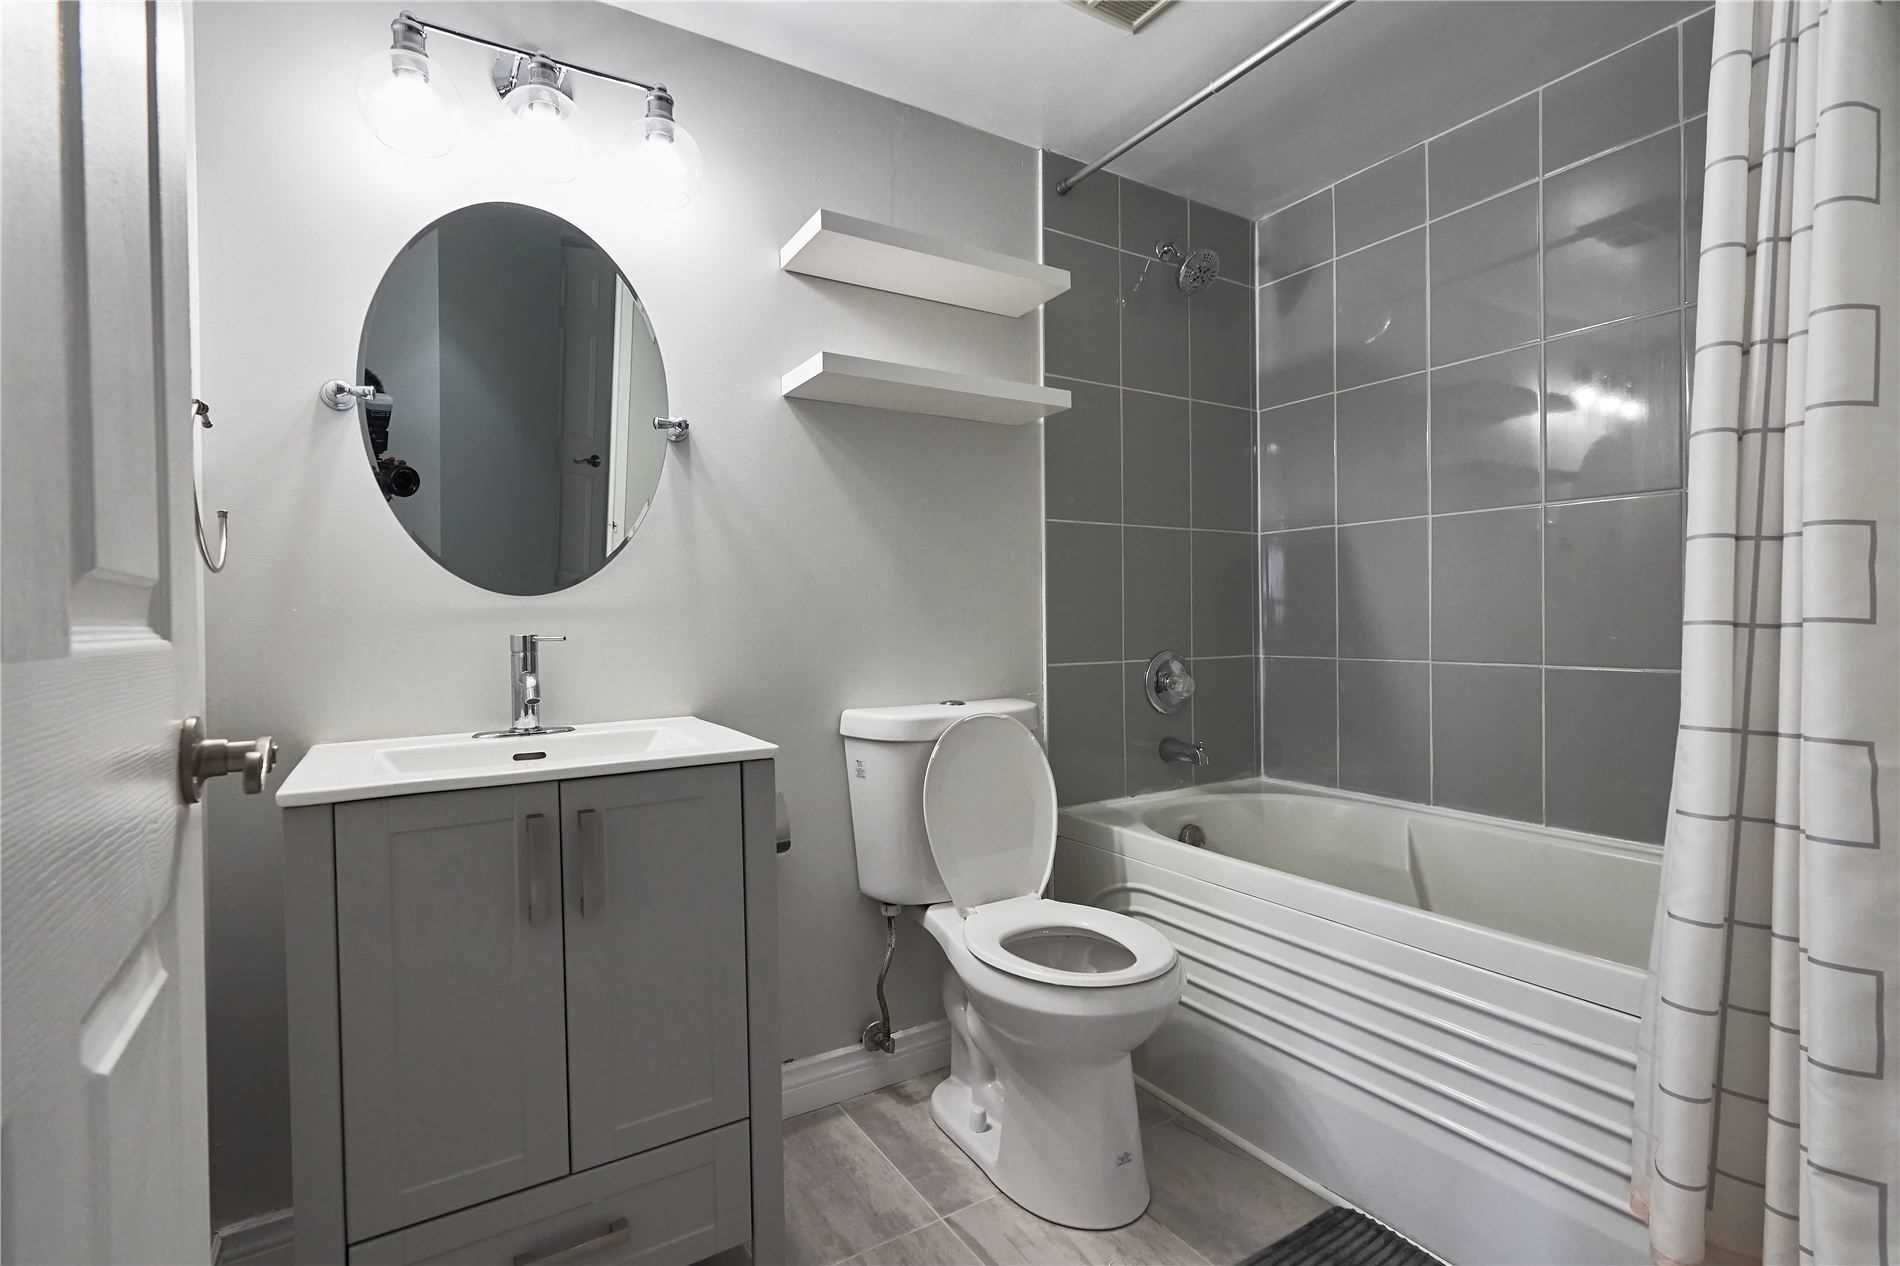 6 Humberline Dr, unit 510 for rent in Toronto - image #2